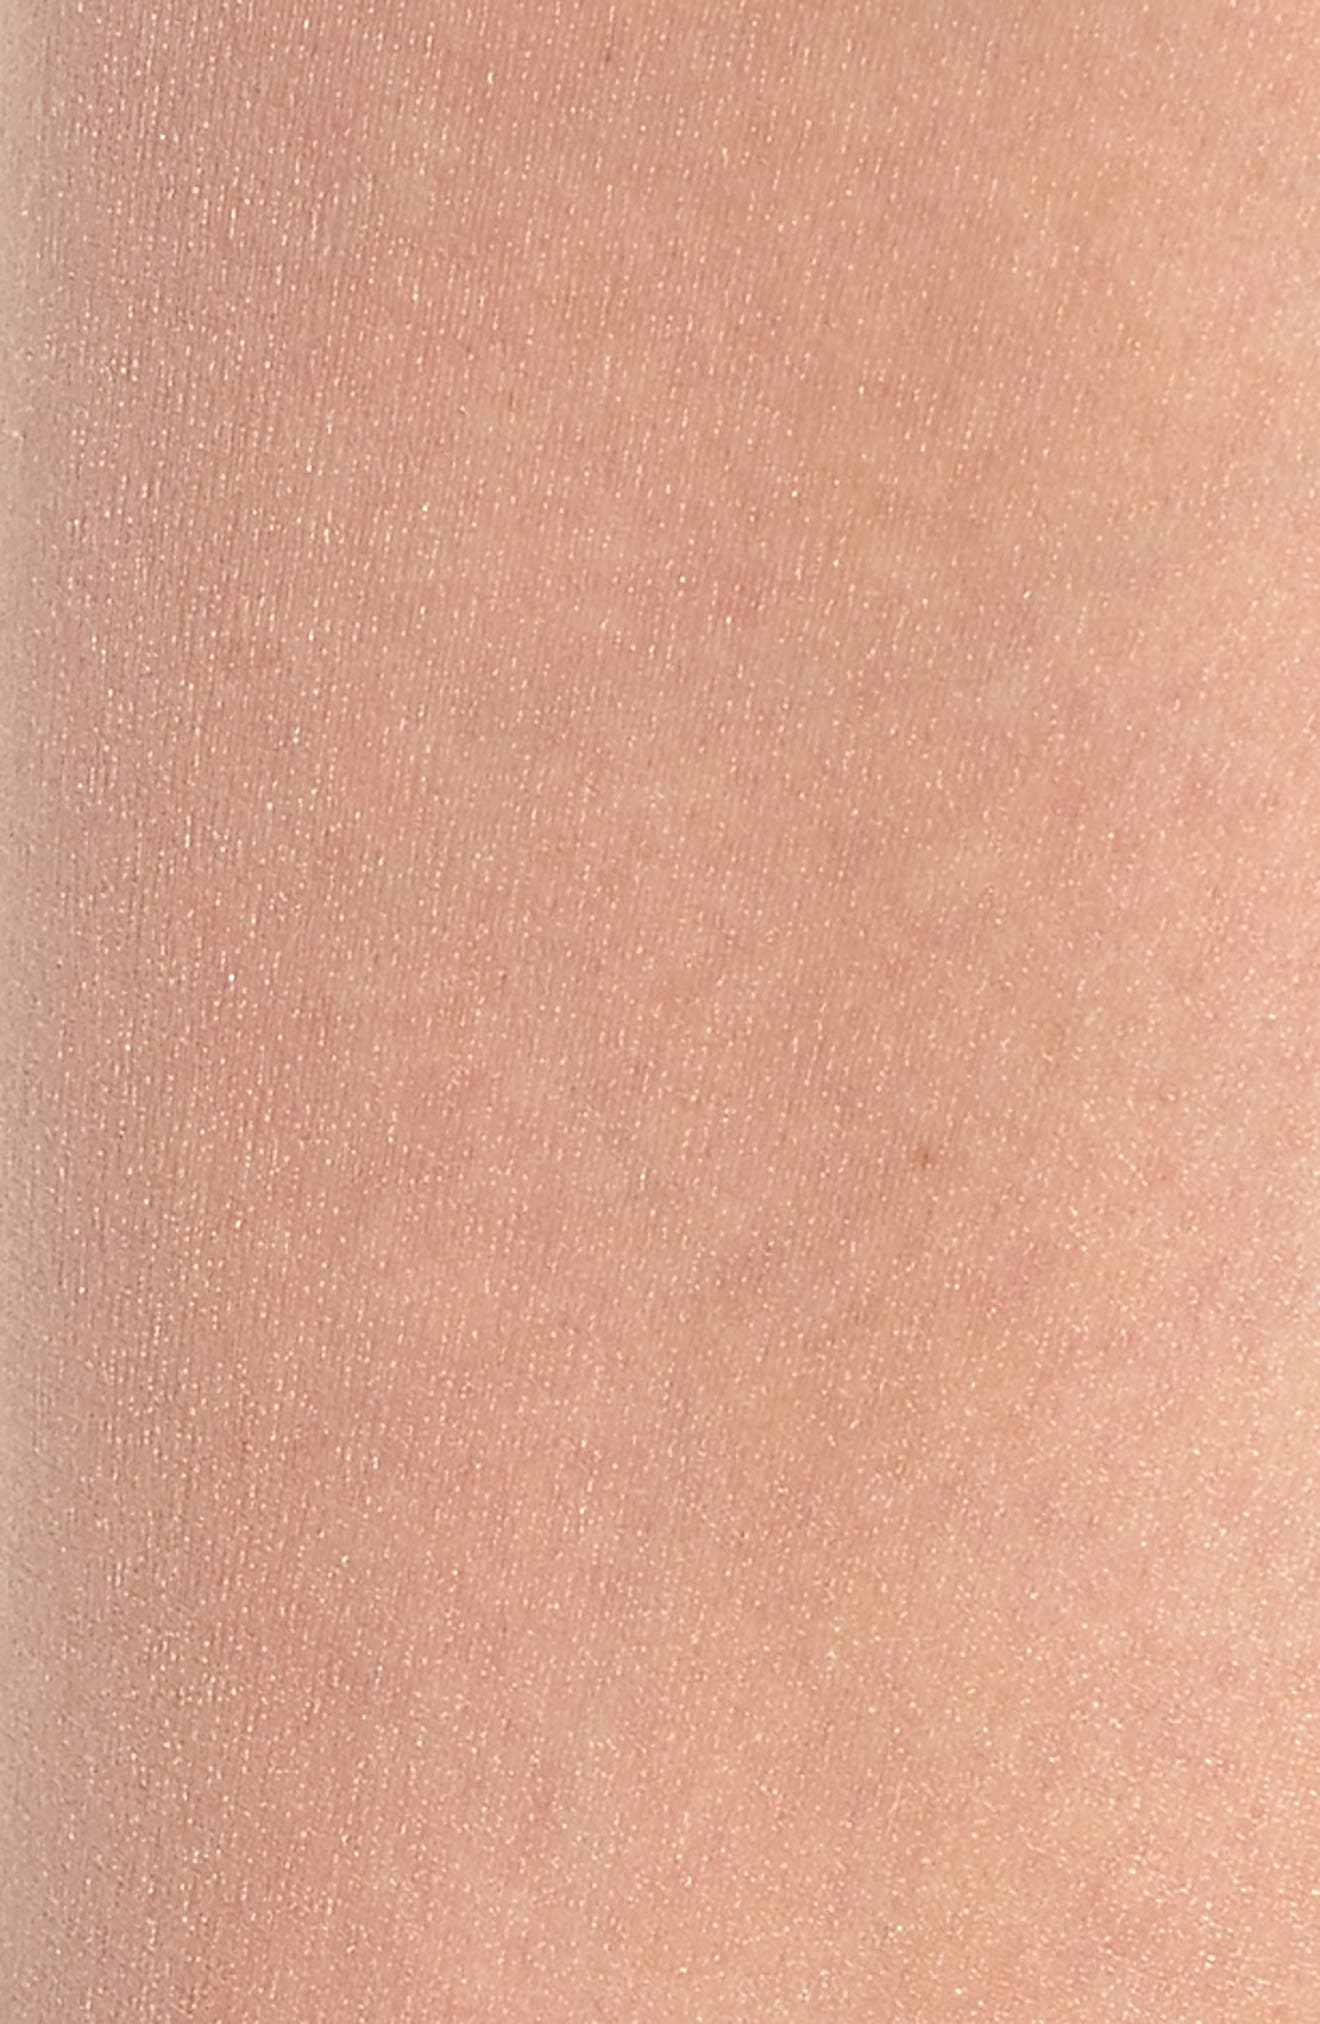 Donna Karan Beyond The Nudes Stay-Up Stockings,                             Alternate thumbnail 6, color,